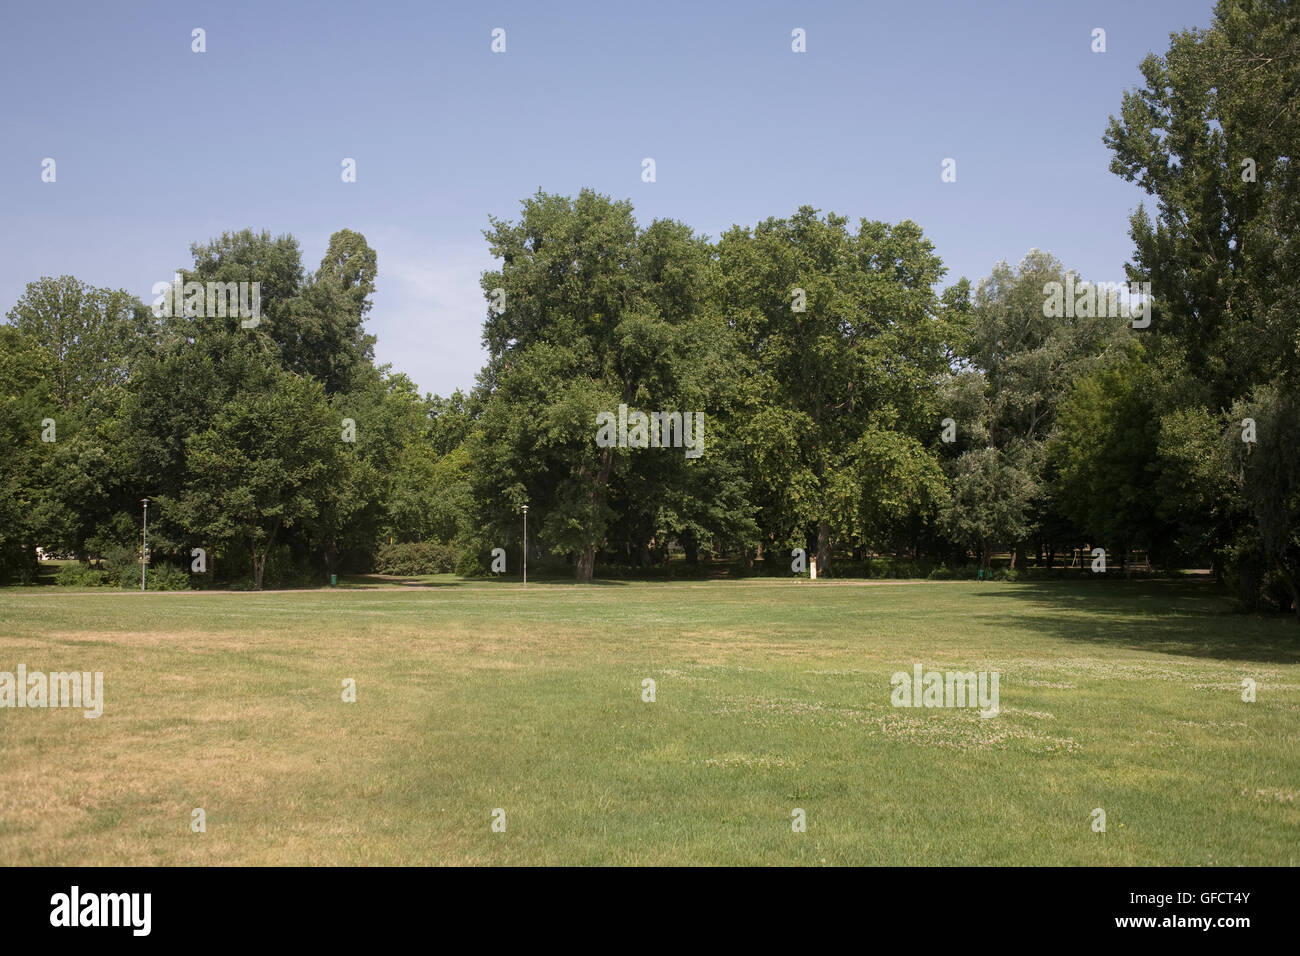 Open space in City park on summer morning - Stock Image